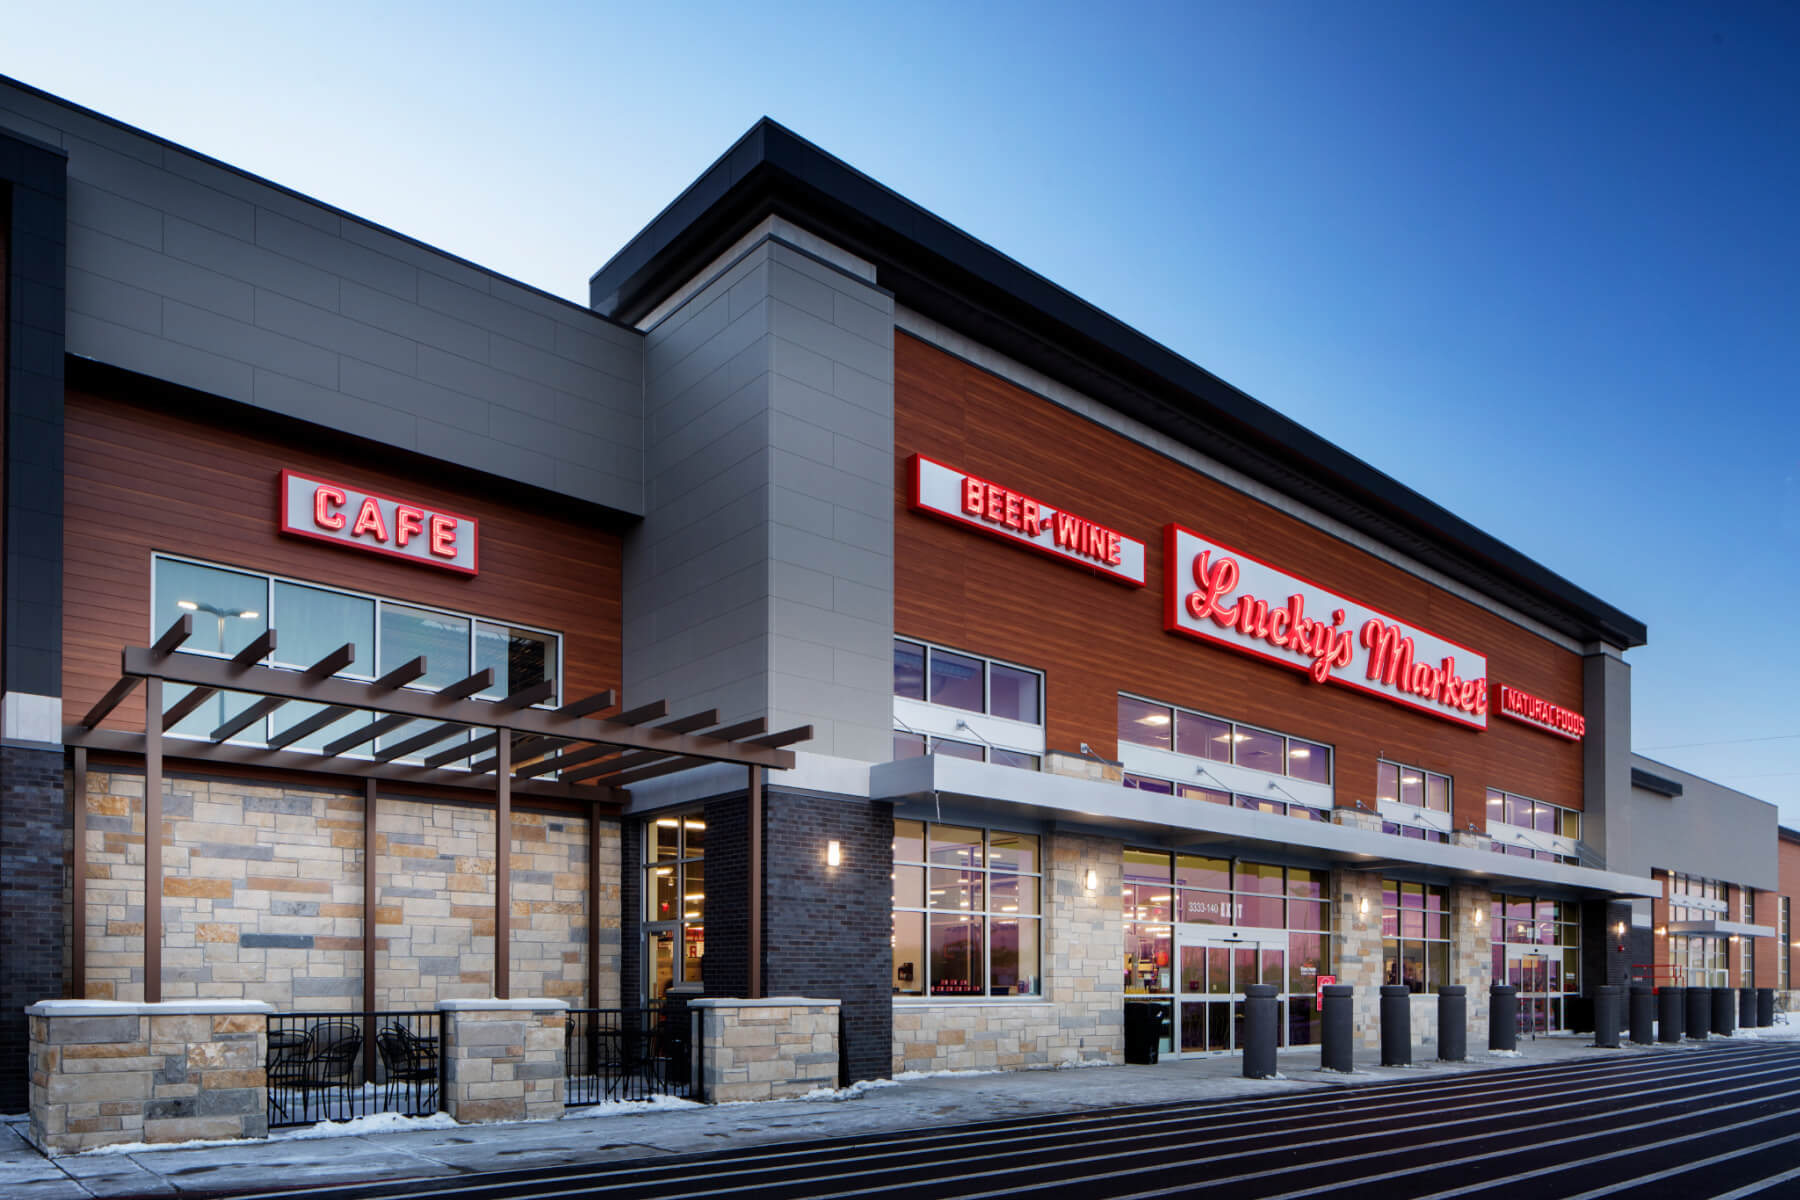 Knoebel Construction contracted to build three Lucky's Markets